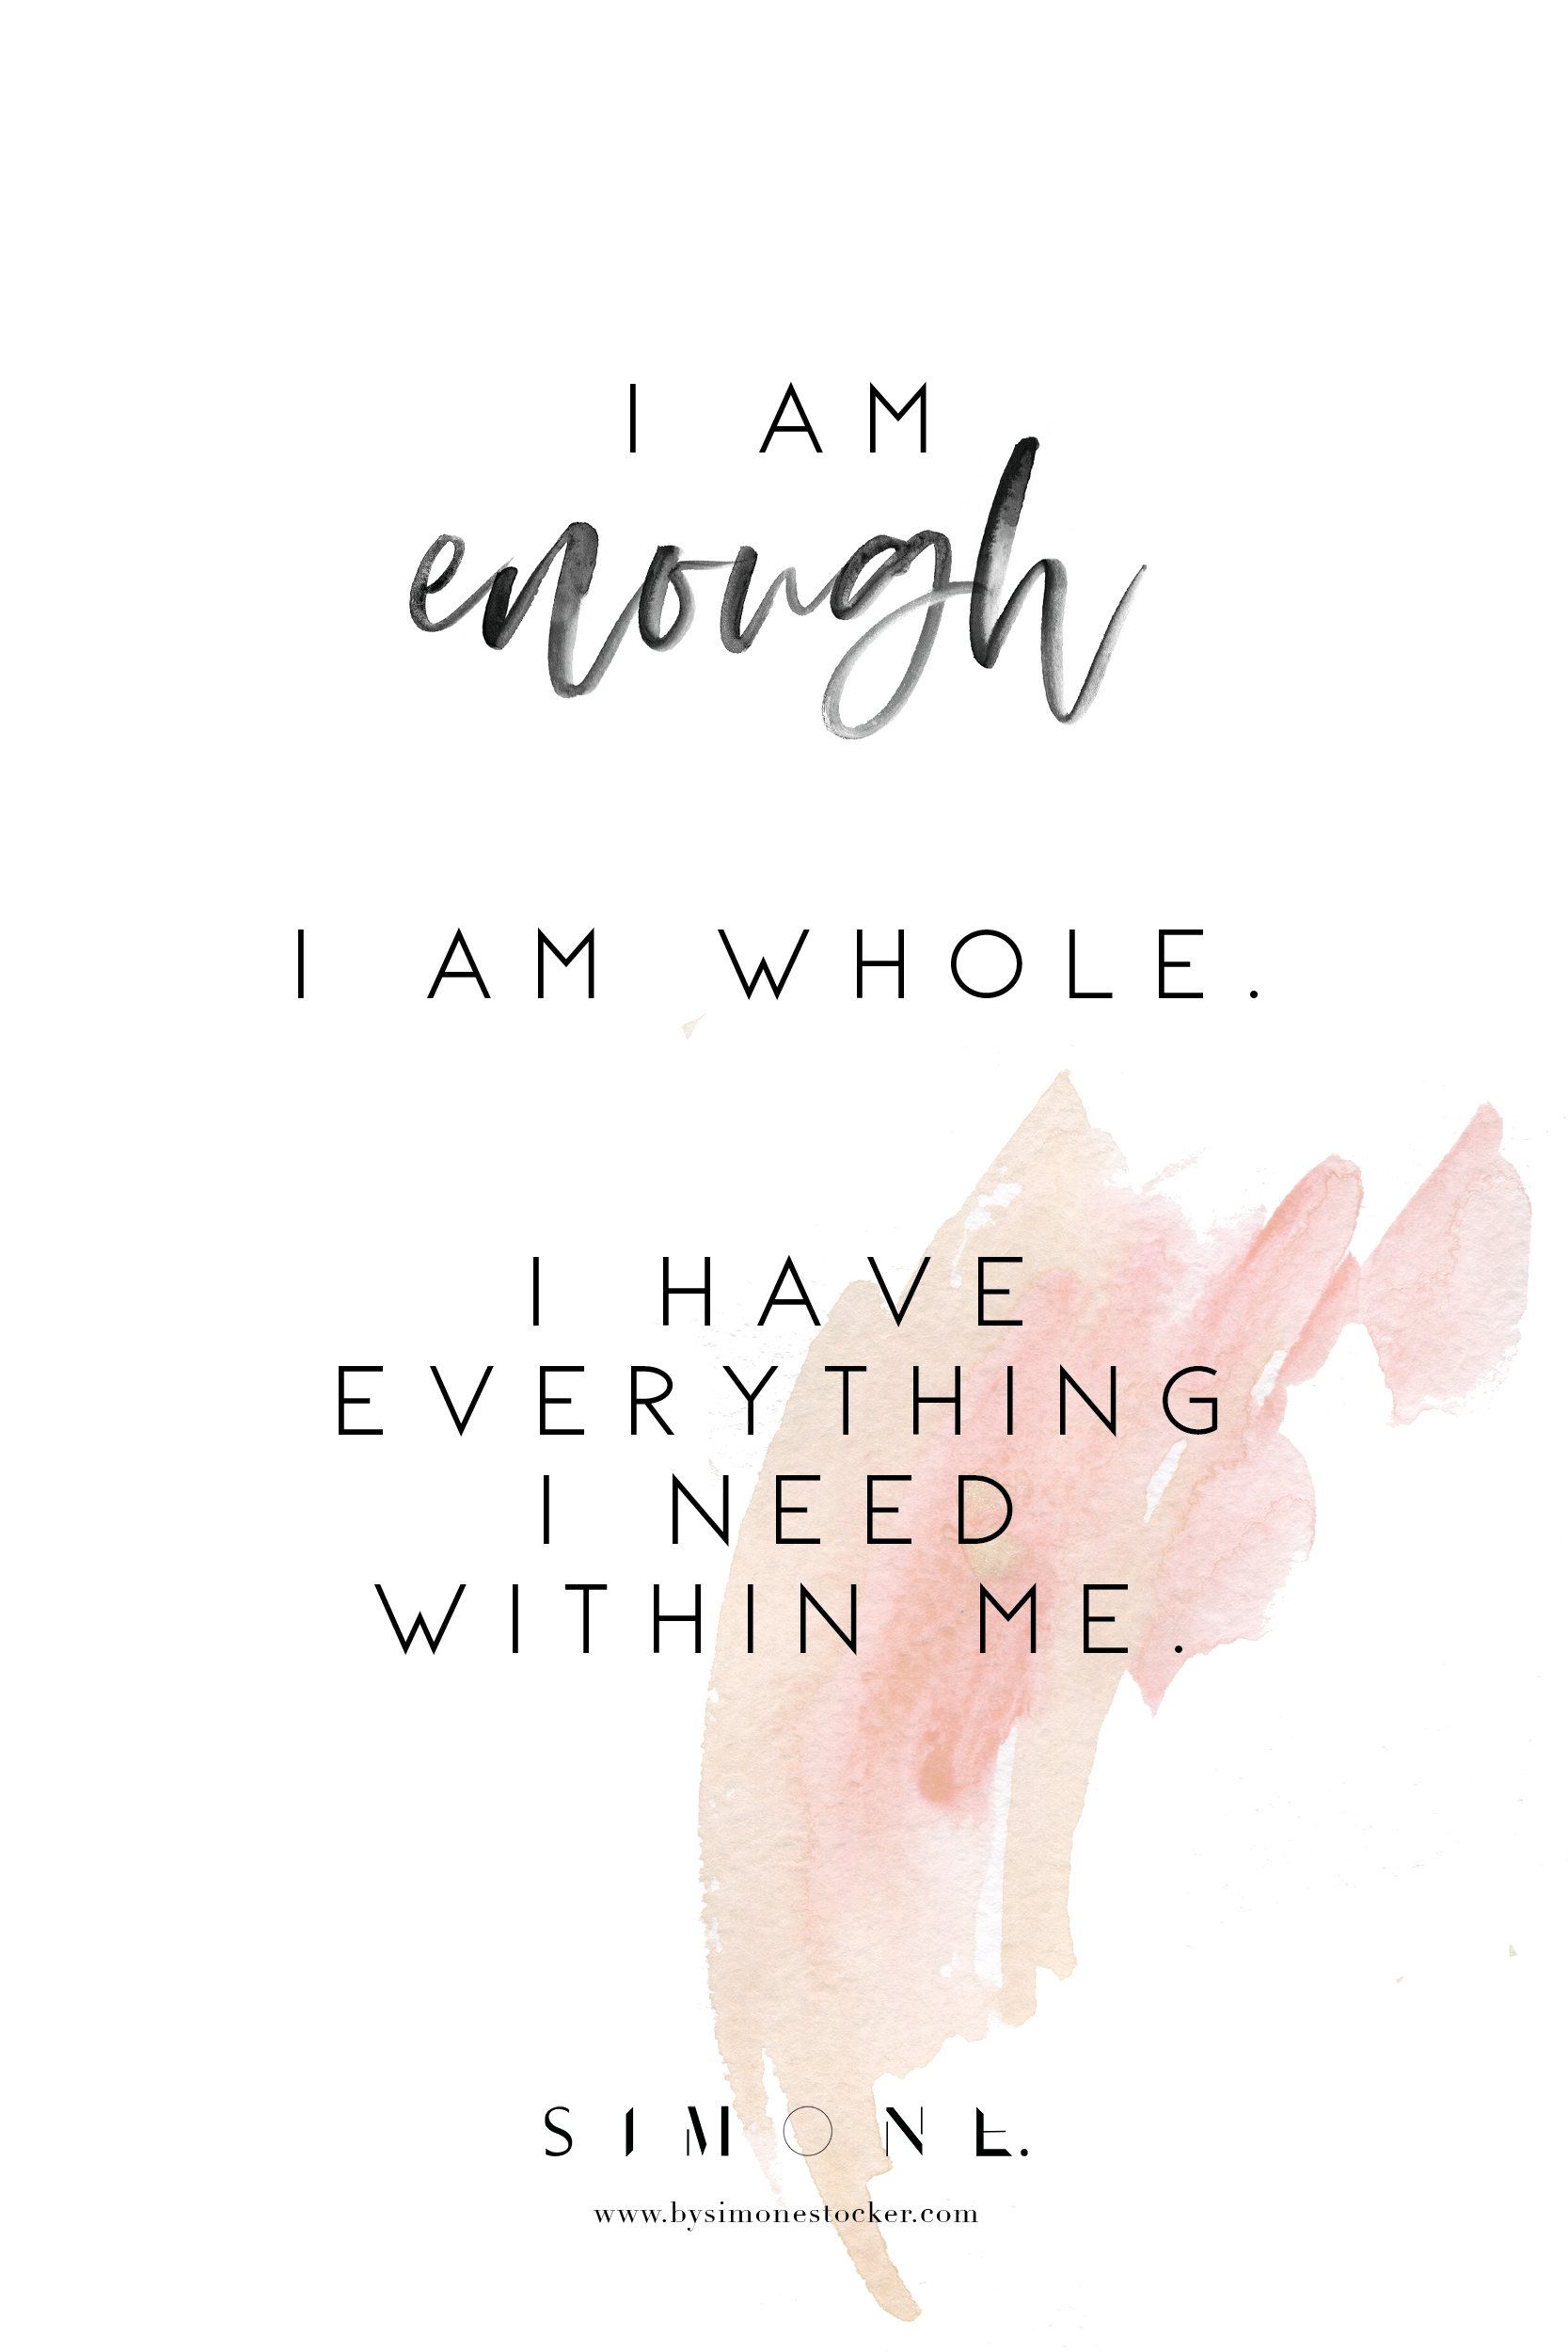 16 powerful affirmations that strengthen your self worth